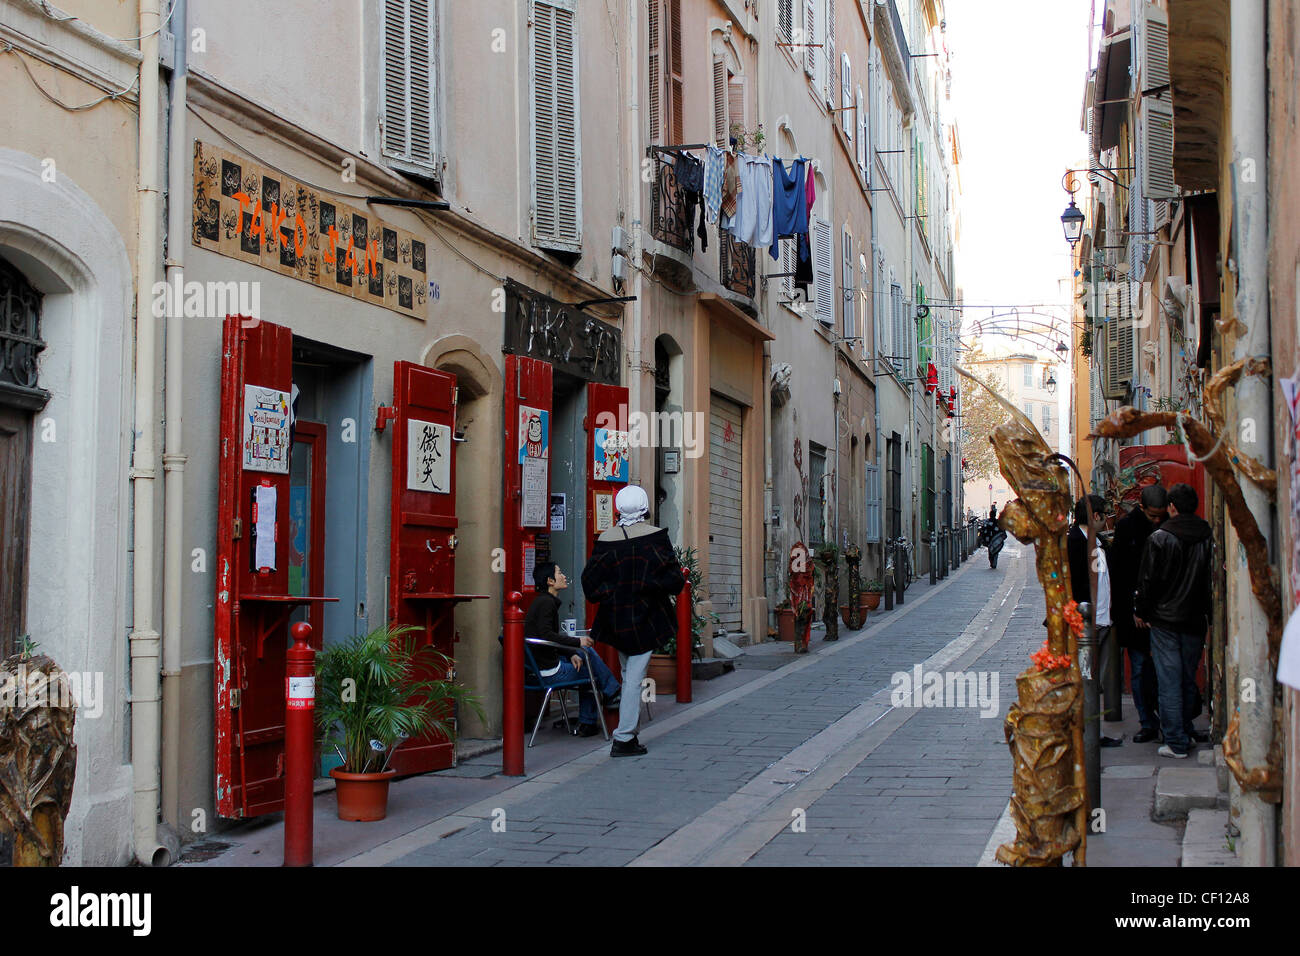 Typical street scene in the Panier District of Marseille - Stock Image